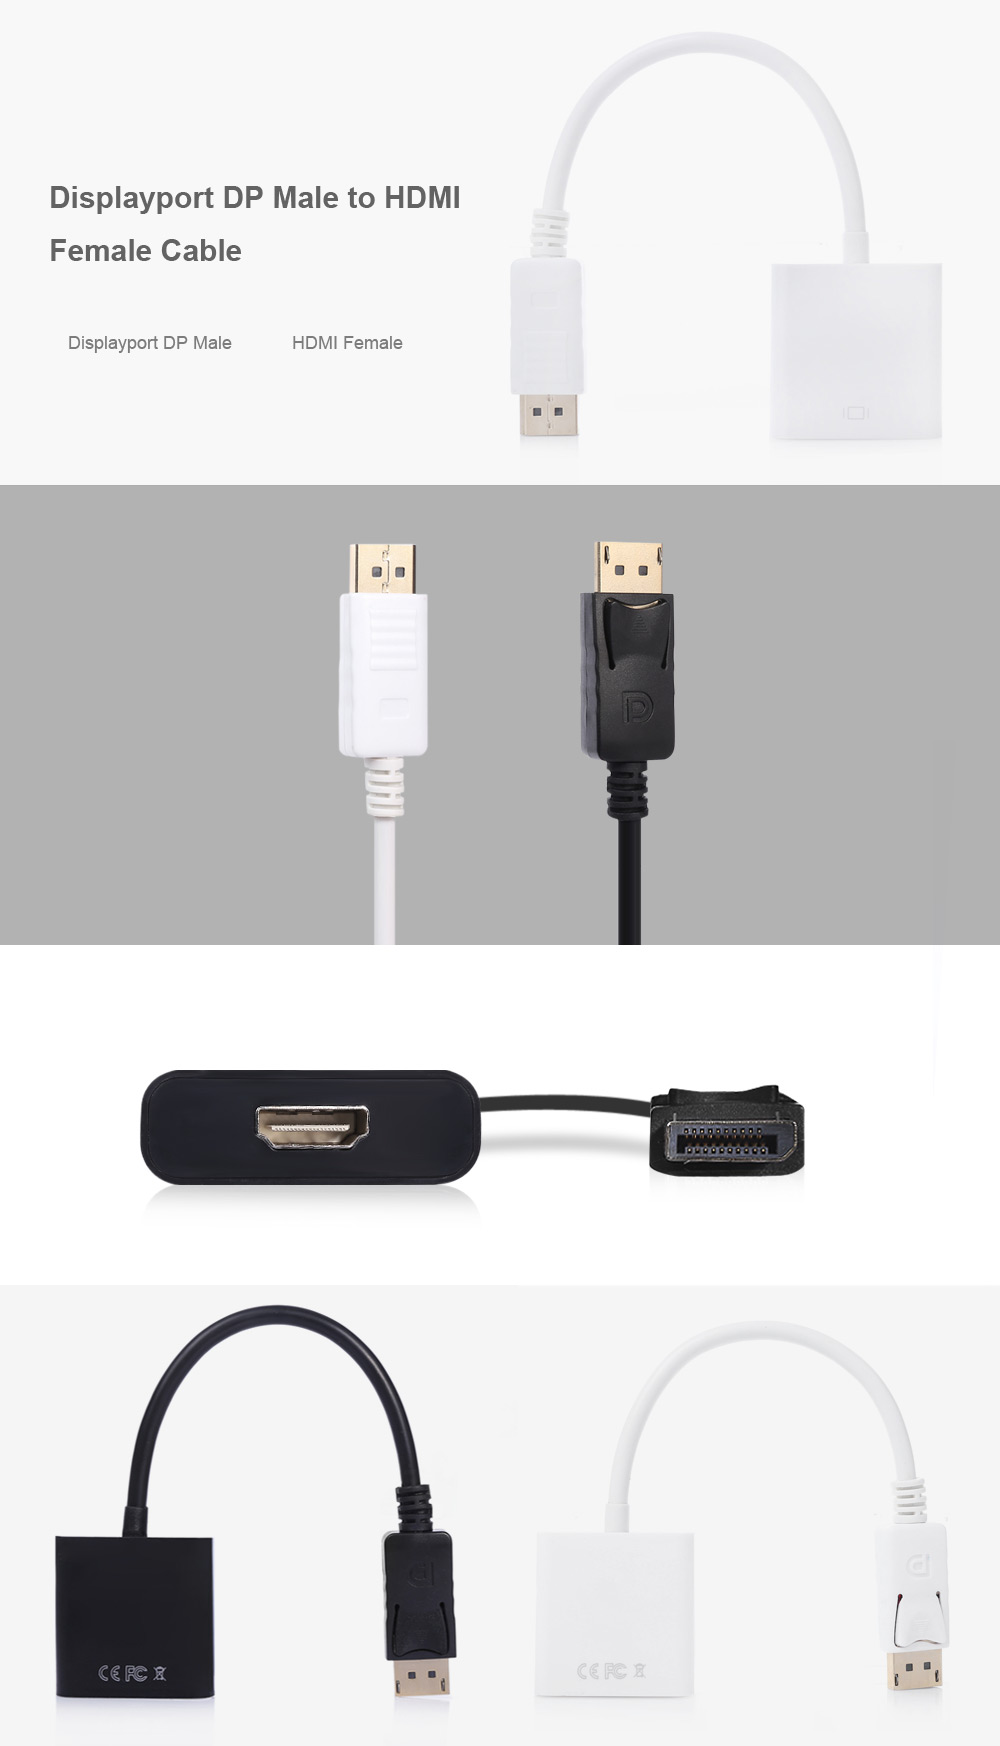 Displayport Dp Male To Hdmi Female Cable Adapter 325 Free Package Contents 1 X